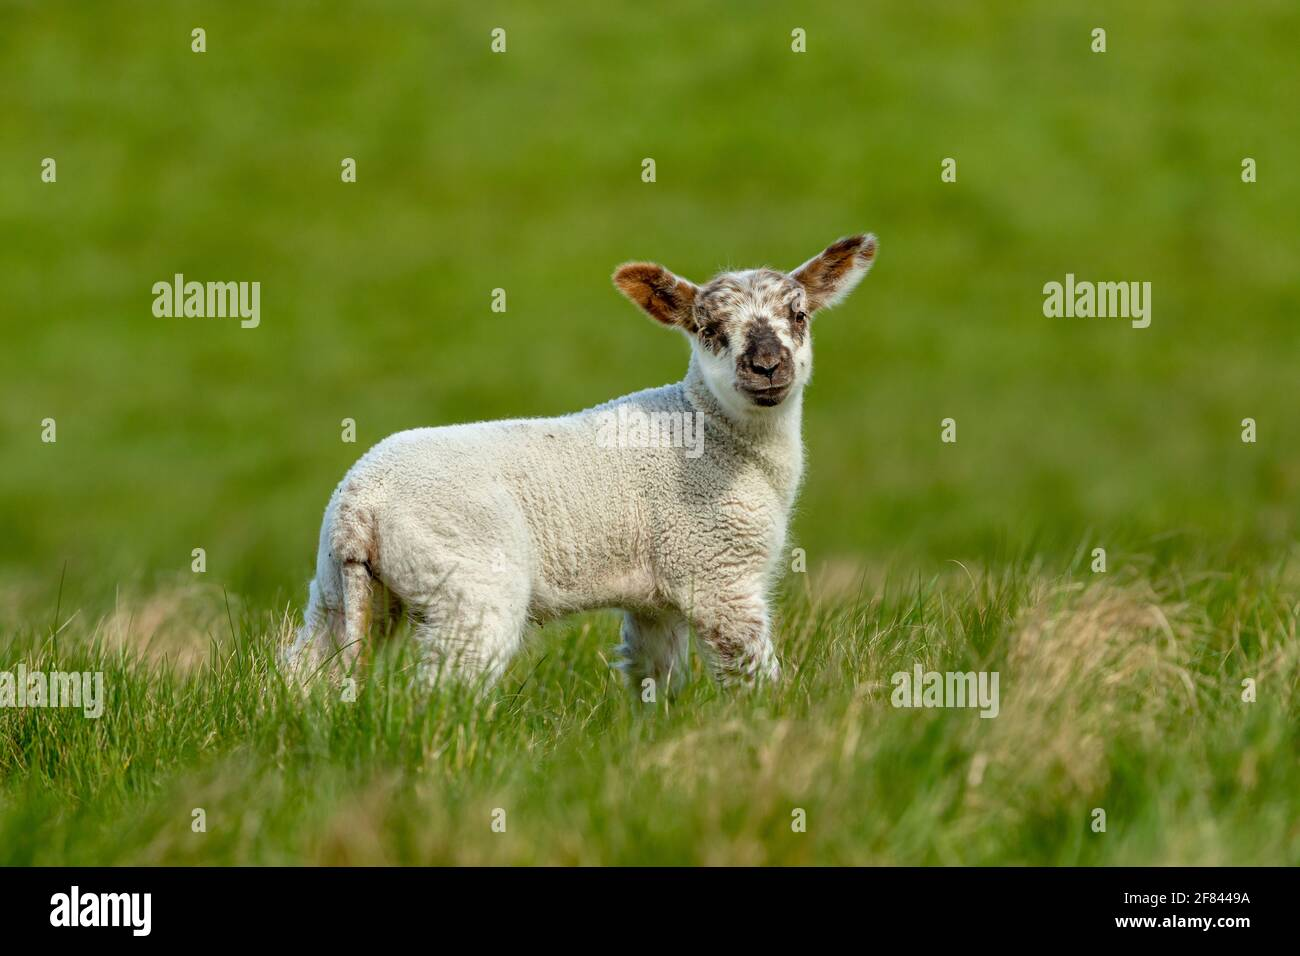 Lamb in Springtime. Happy, smiling lamb stood in lush green meadow and facing forward. Yorkshire, UK. Clean, green background. Landscape, Copyspace Stock Photo